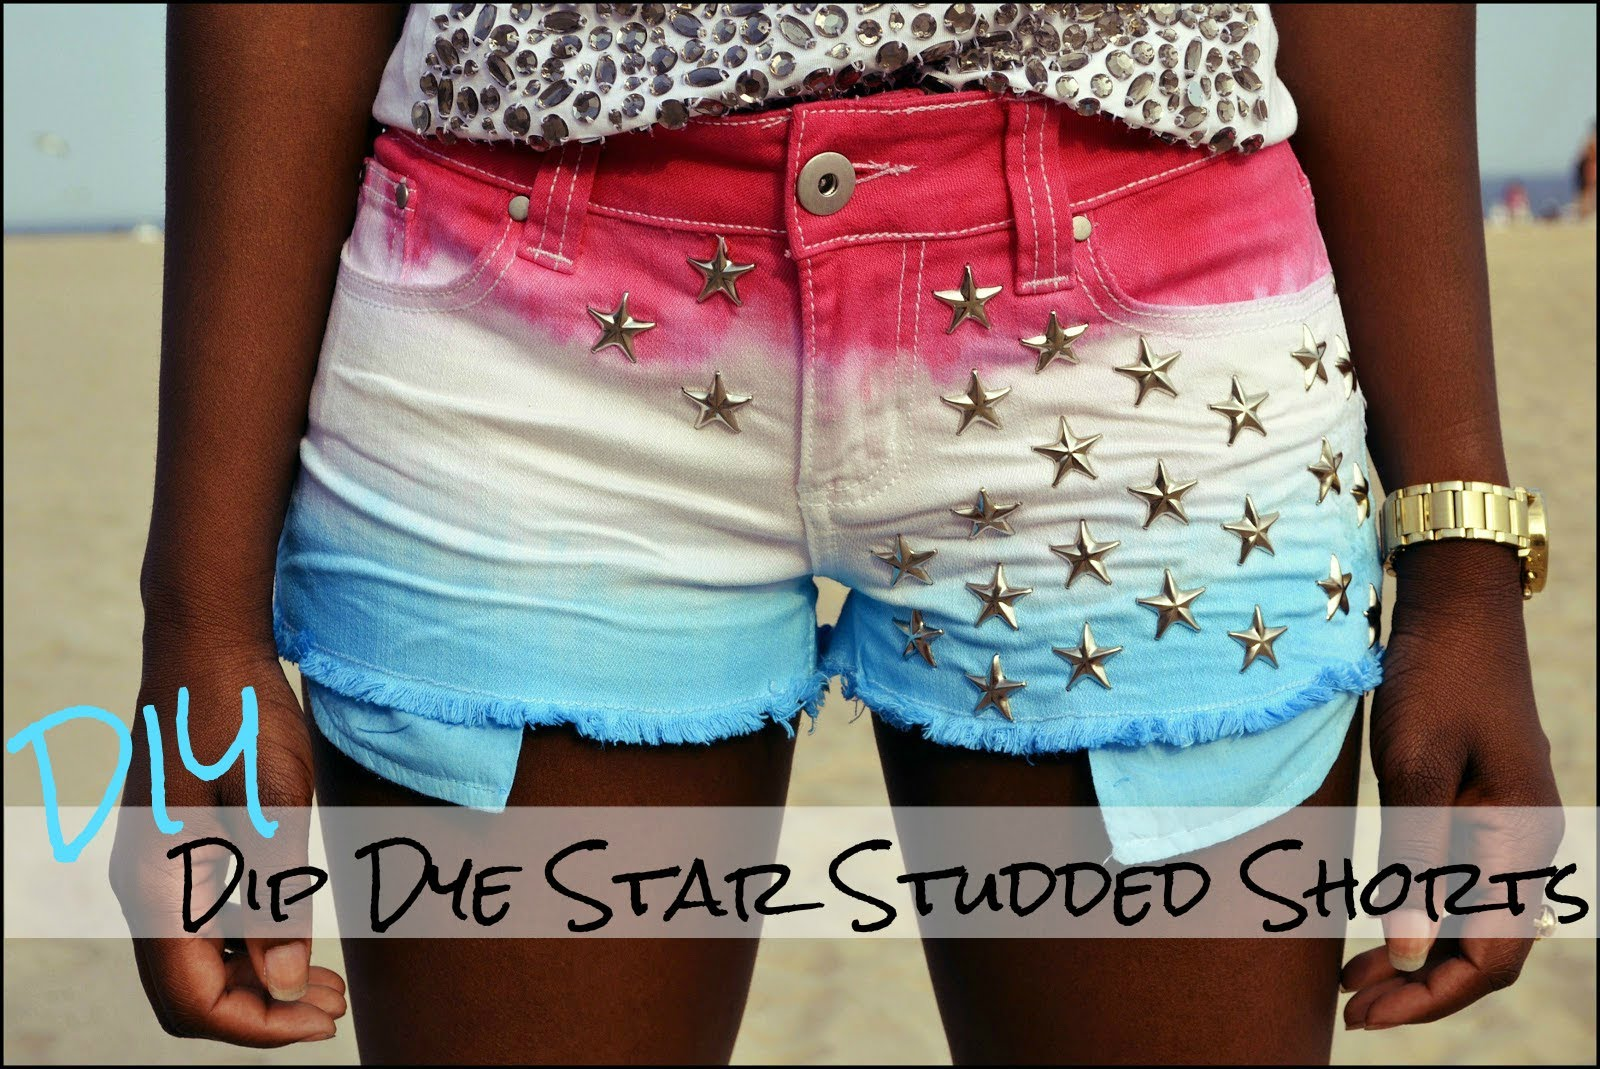 DIY Dip Dye Star Studded Shorts - YouTube